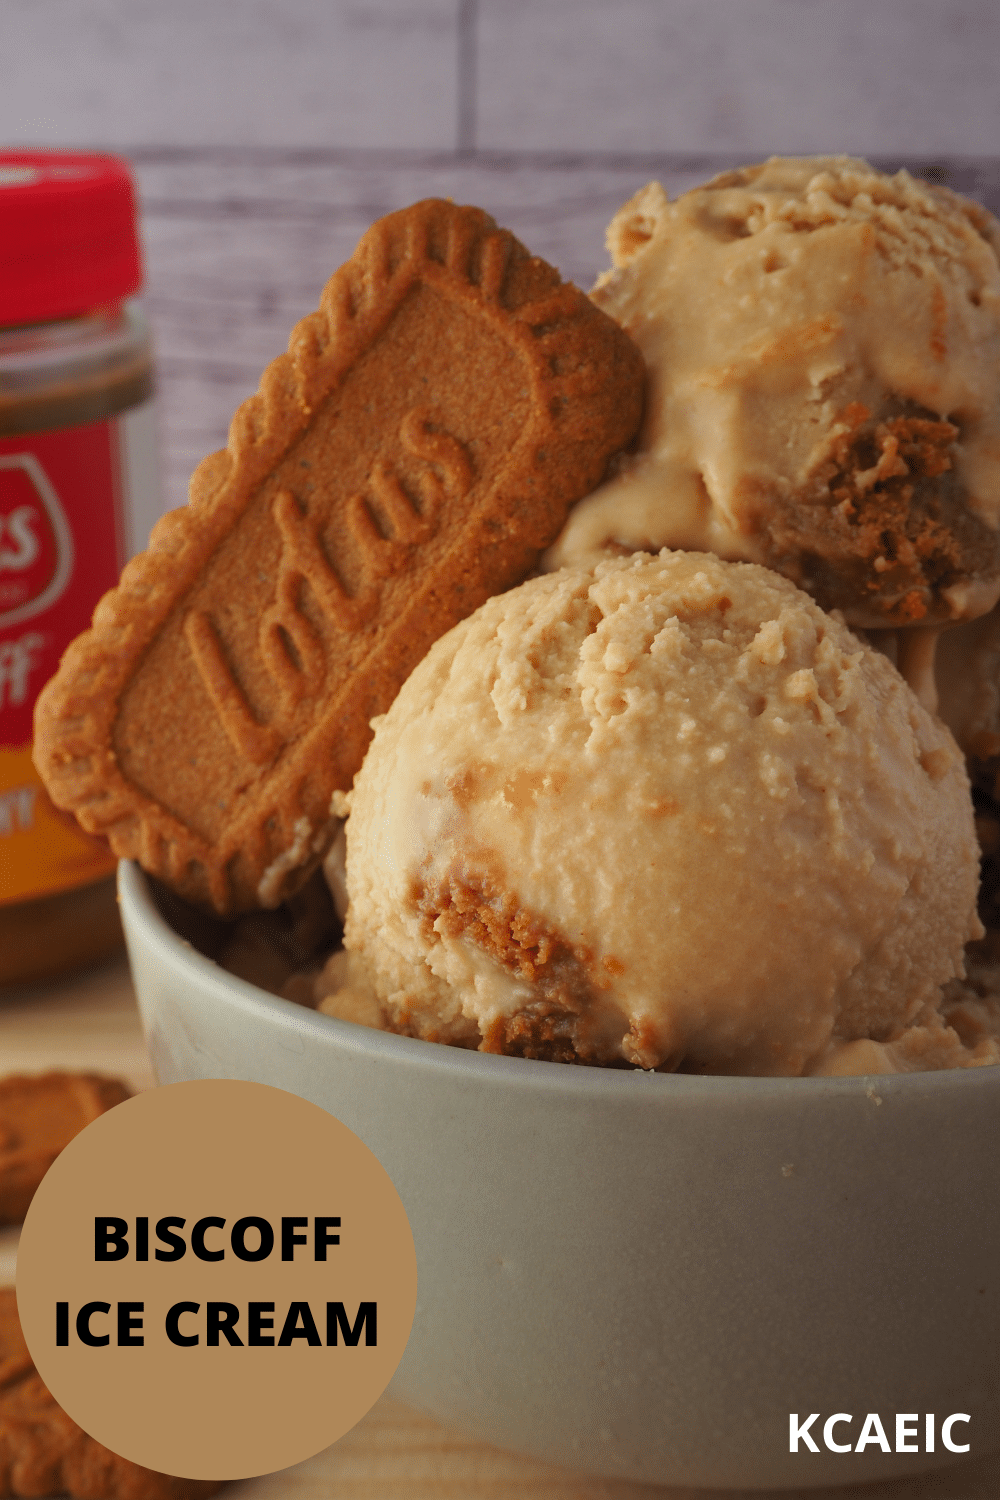 Side view of scoops of biscoff ice cream in grey bowl, with biscuit in ice cream on an an angle, with biscoff jar in the background, and text overlay, biscoff ice cream and KCAEIC.